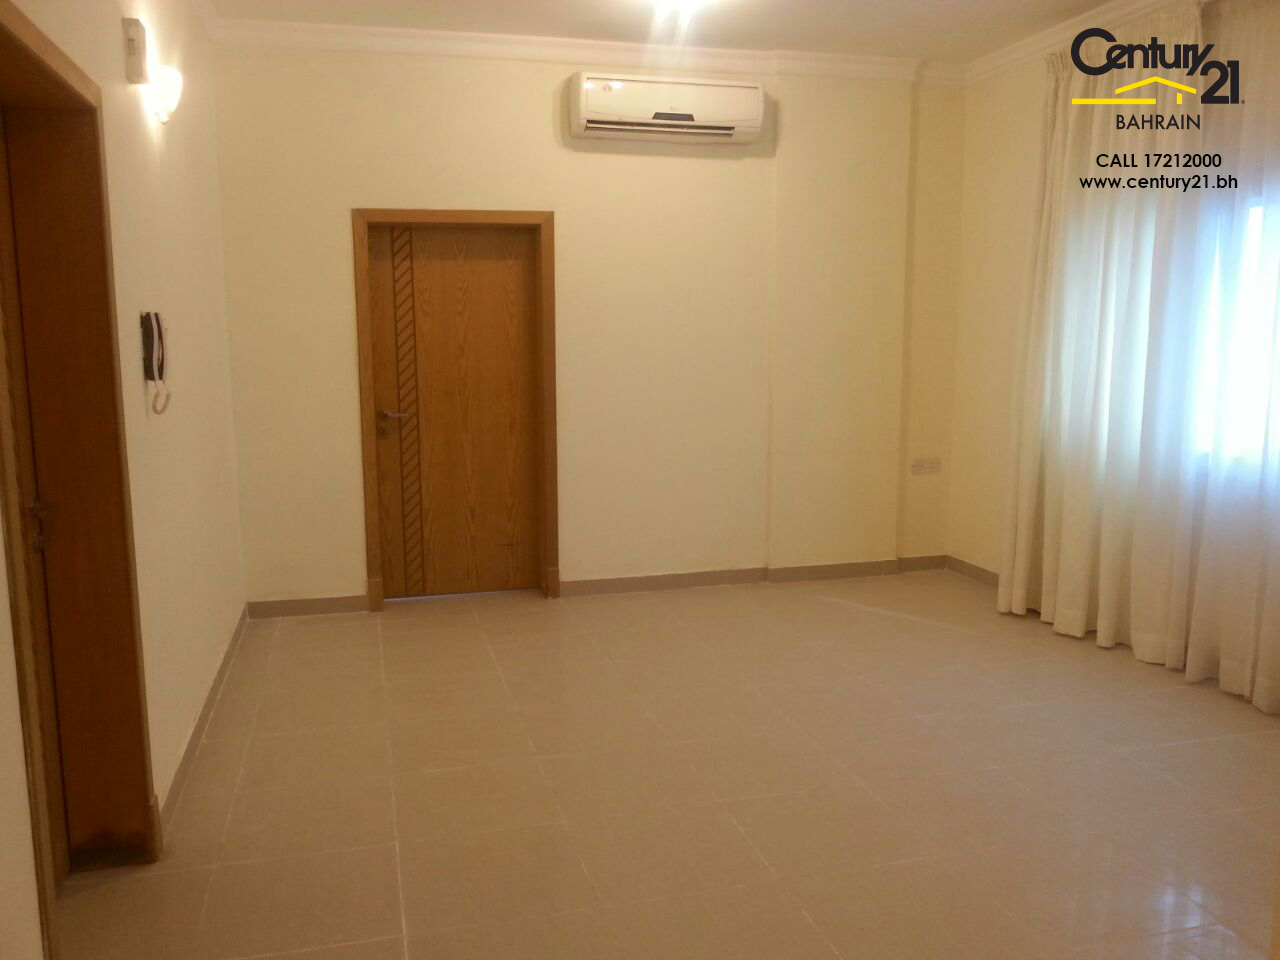 2 bedroom apartment for rent in hidd fr667 century 21 for Apartment for rent 2 bedroom